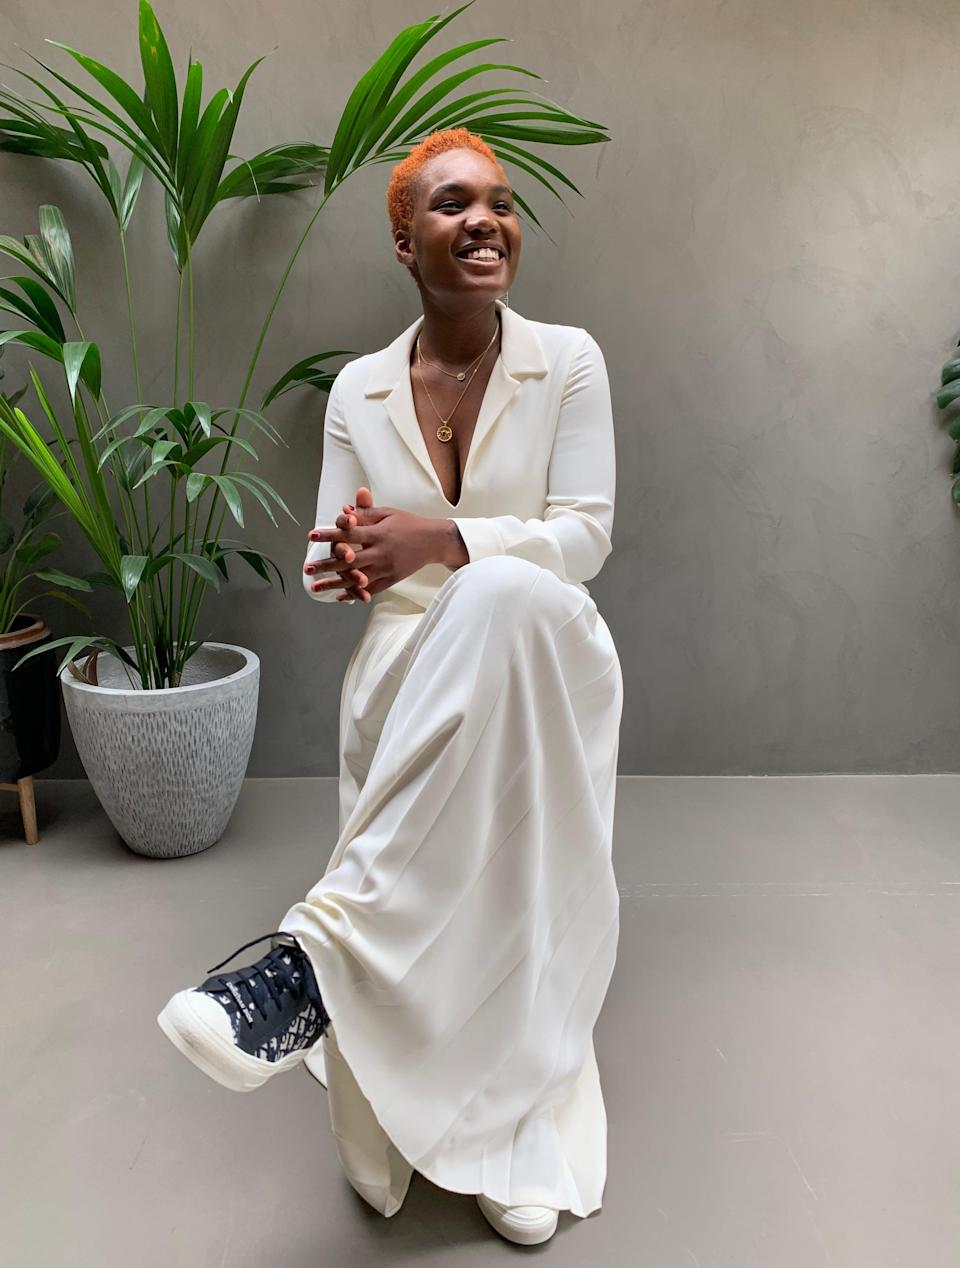 "<h2>Arlo Parks, Dior</h2><br>""Hurt"" singer Arlo Parks looked much more relaxed while watching the Dior show from home than she probably would've been running from show to show in Paris. For the virtual occasion, she paired an ivory-colored, collared maxi dress with Dior logo sneakers."